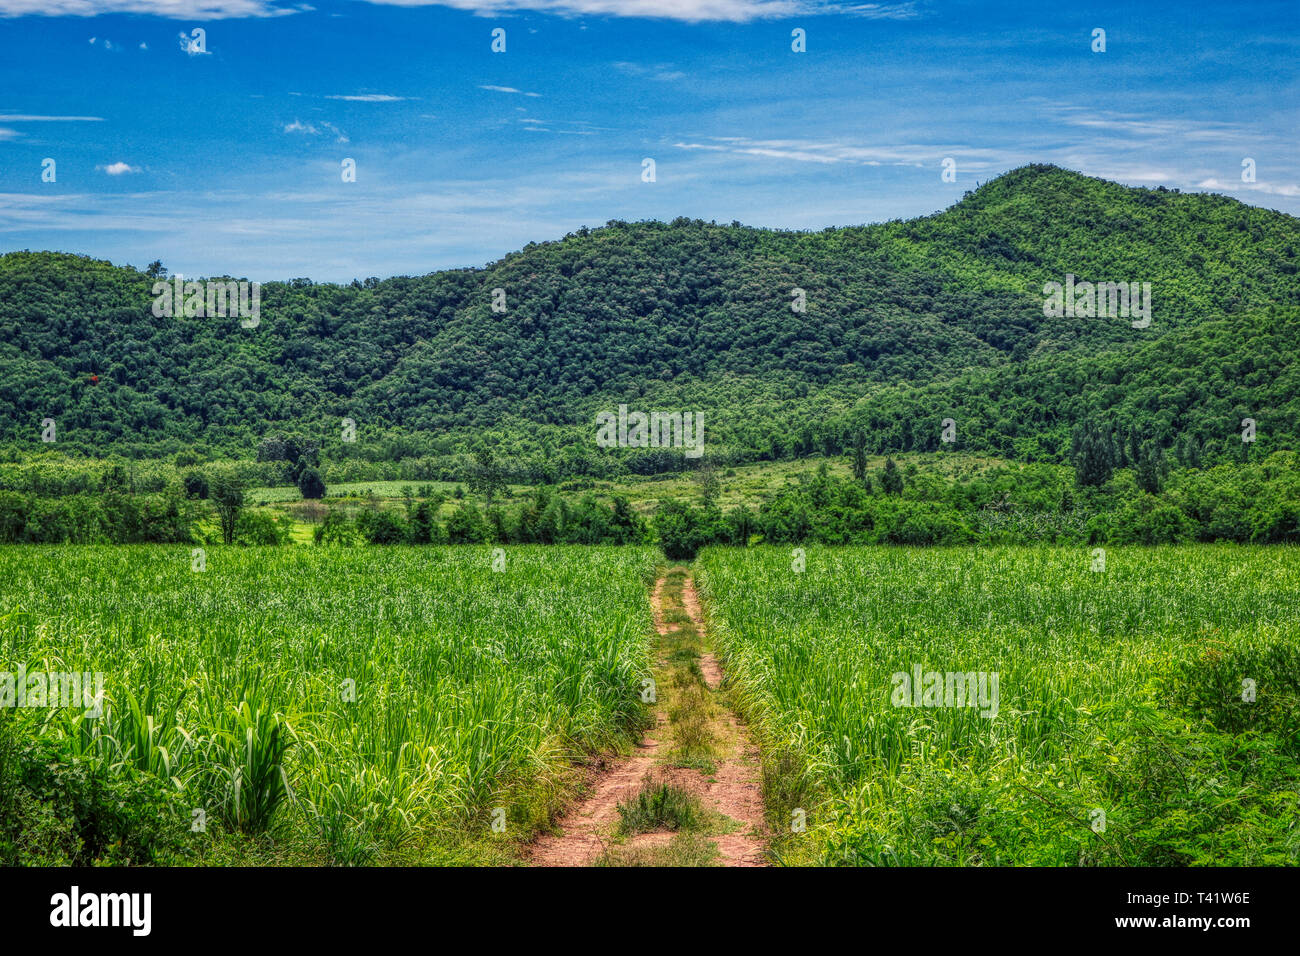 This unique image shows the road in nature with hills and trees to the Kaeng Krachan National Park in Thailand Stock Photo